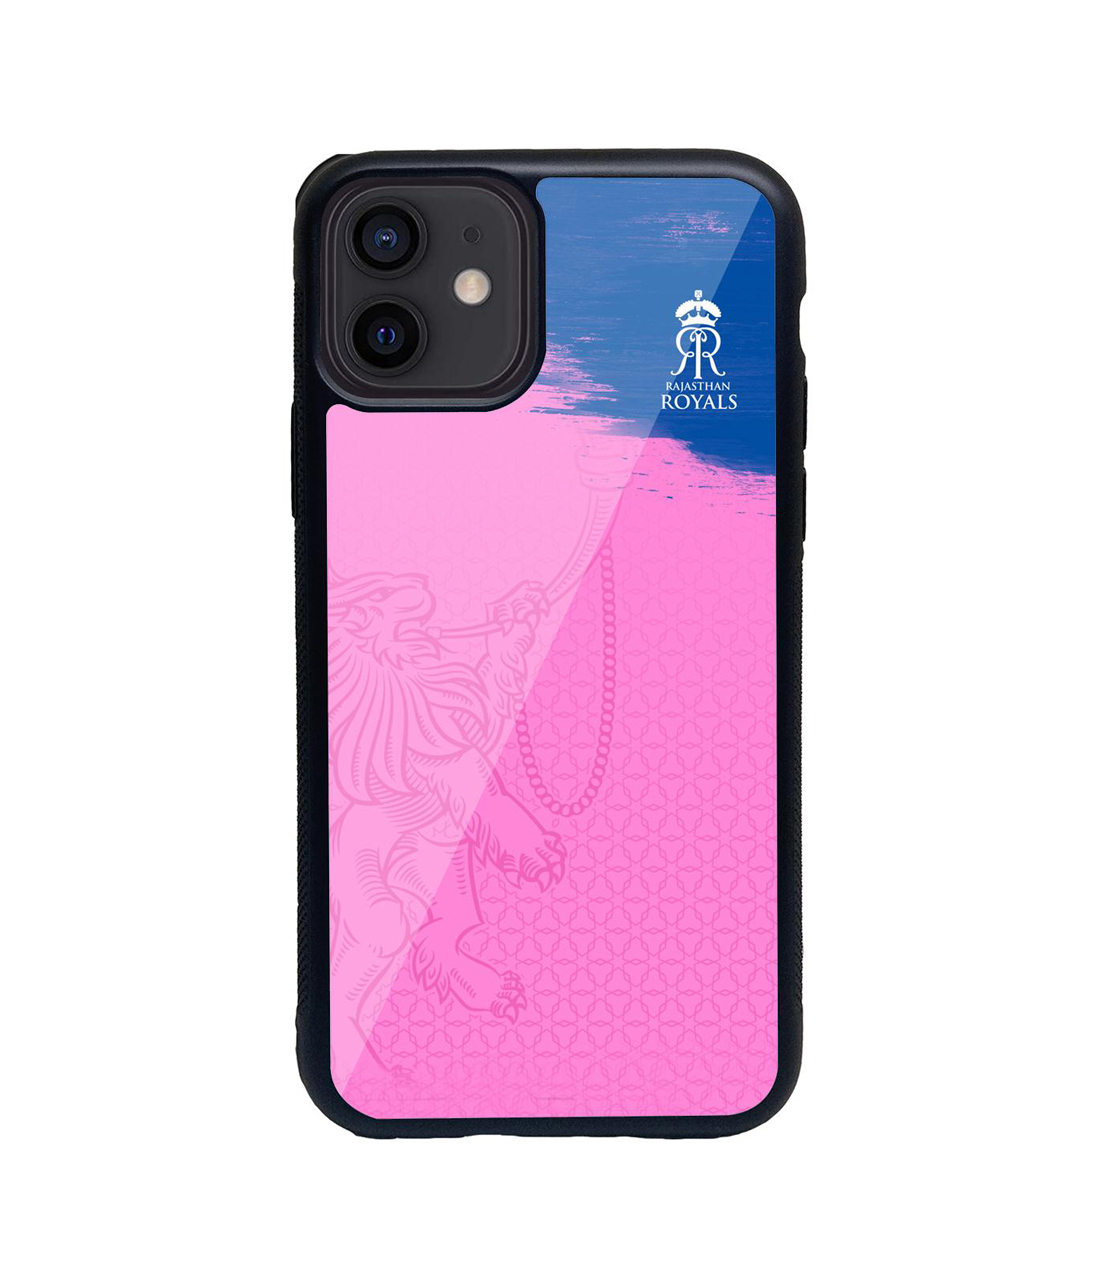 Rajasthan Royals Crest Pink - Glass Case for iPhone 12